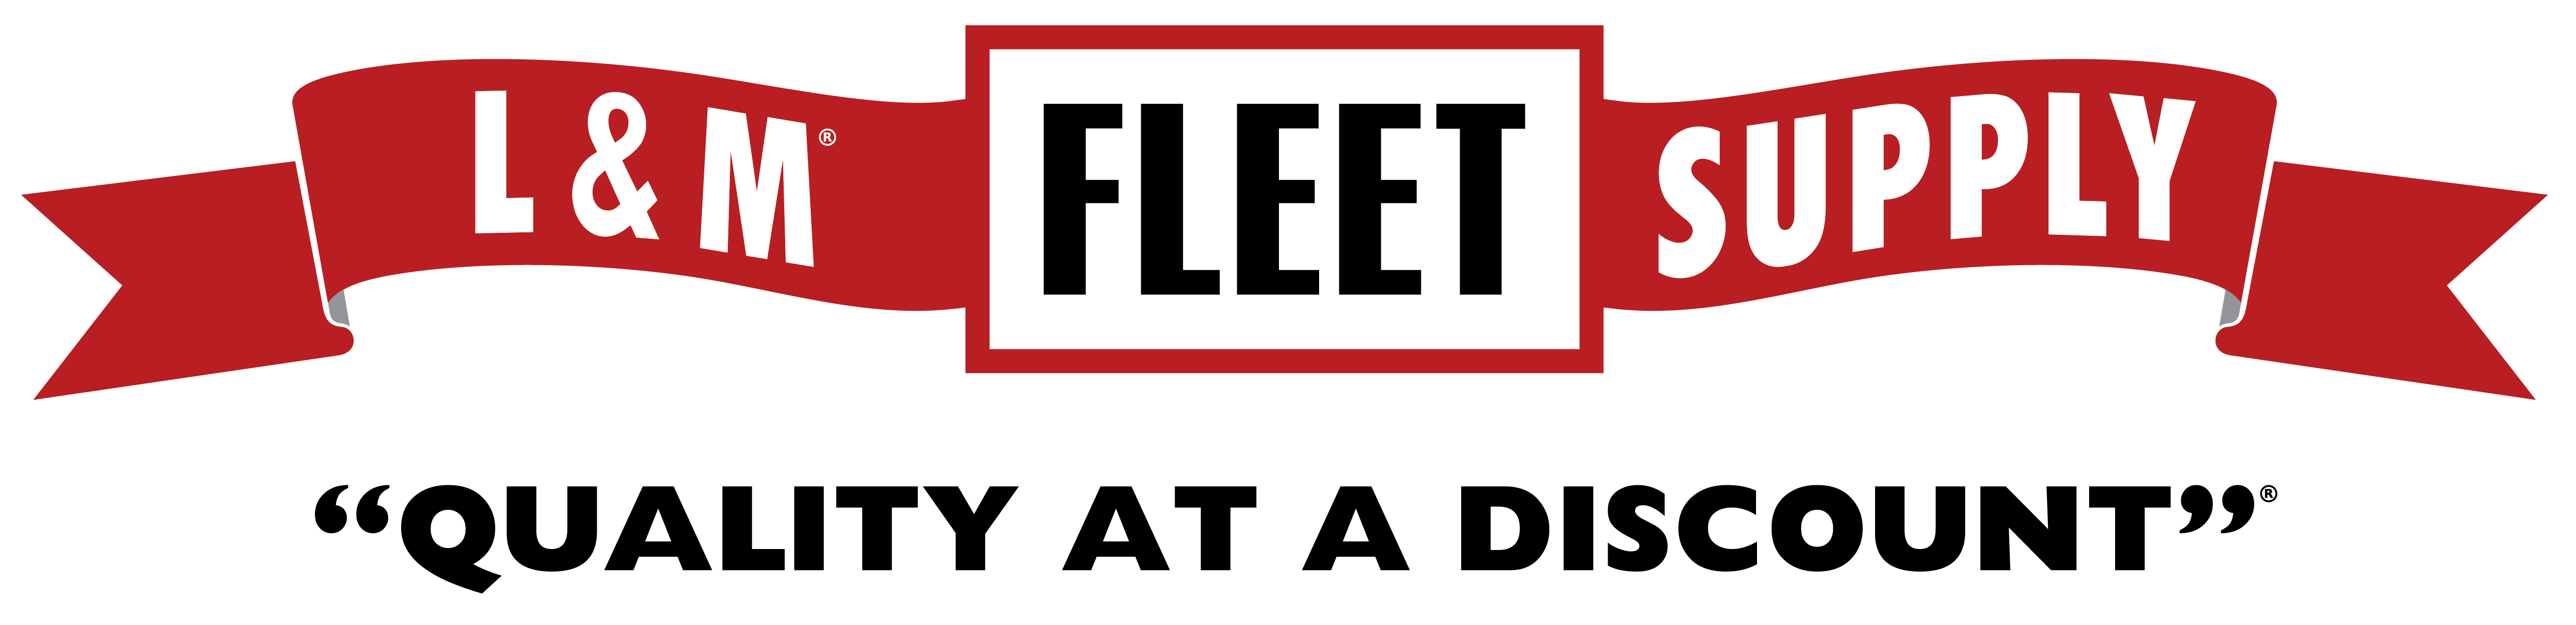 L&M Fleet Supply